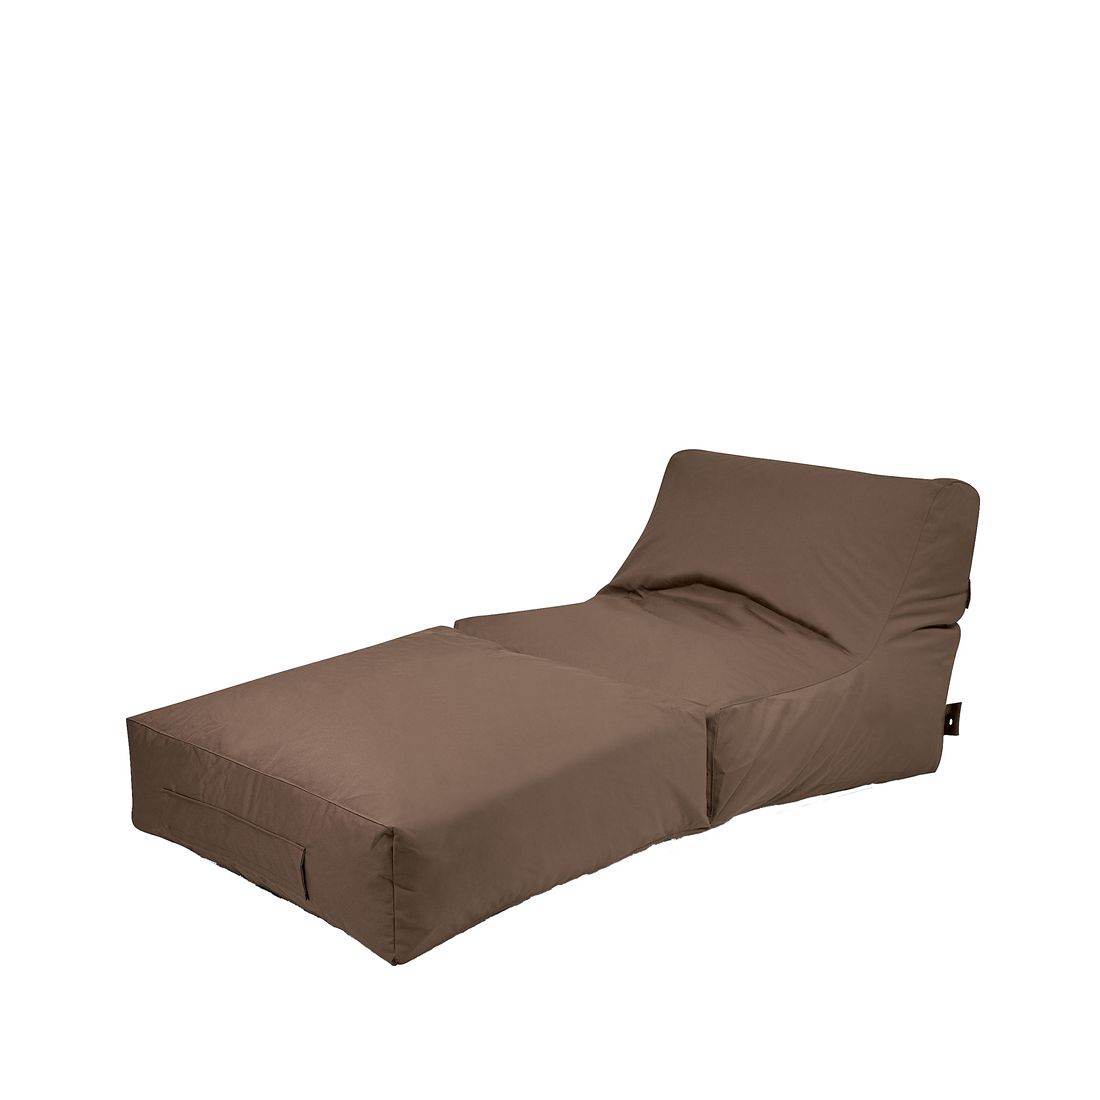 Outdoor-Loungemöbel Peak - Polyester Cappuchino, Global Bedding